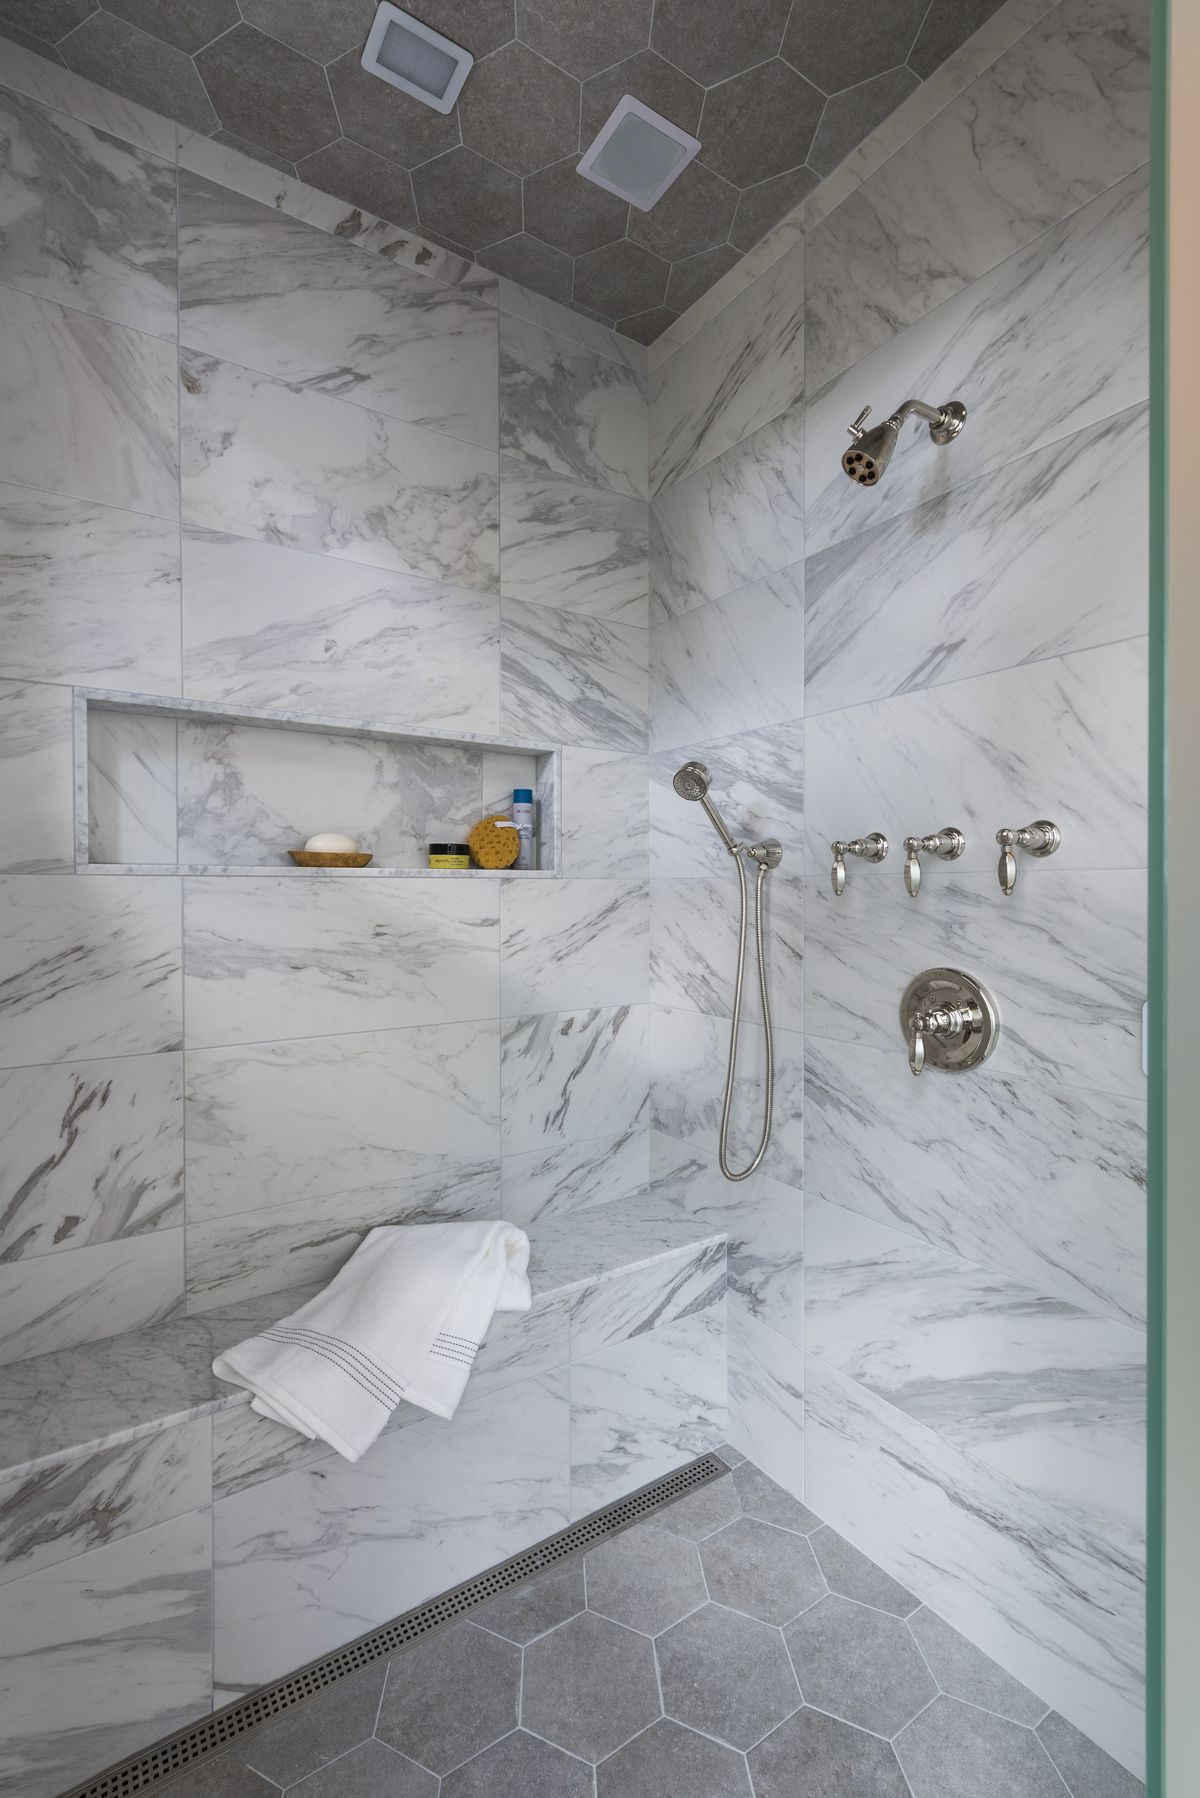 """<p><span style=""""font-size:18px""""><strong>Shower Bench</strong></span><br> Our dreamy steam shower is made even more luxurious thanks to an ingeniously heated bench, where one can kick back and truly revel in the heat.</p>"""